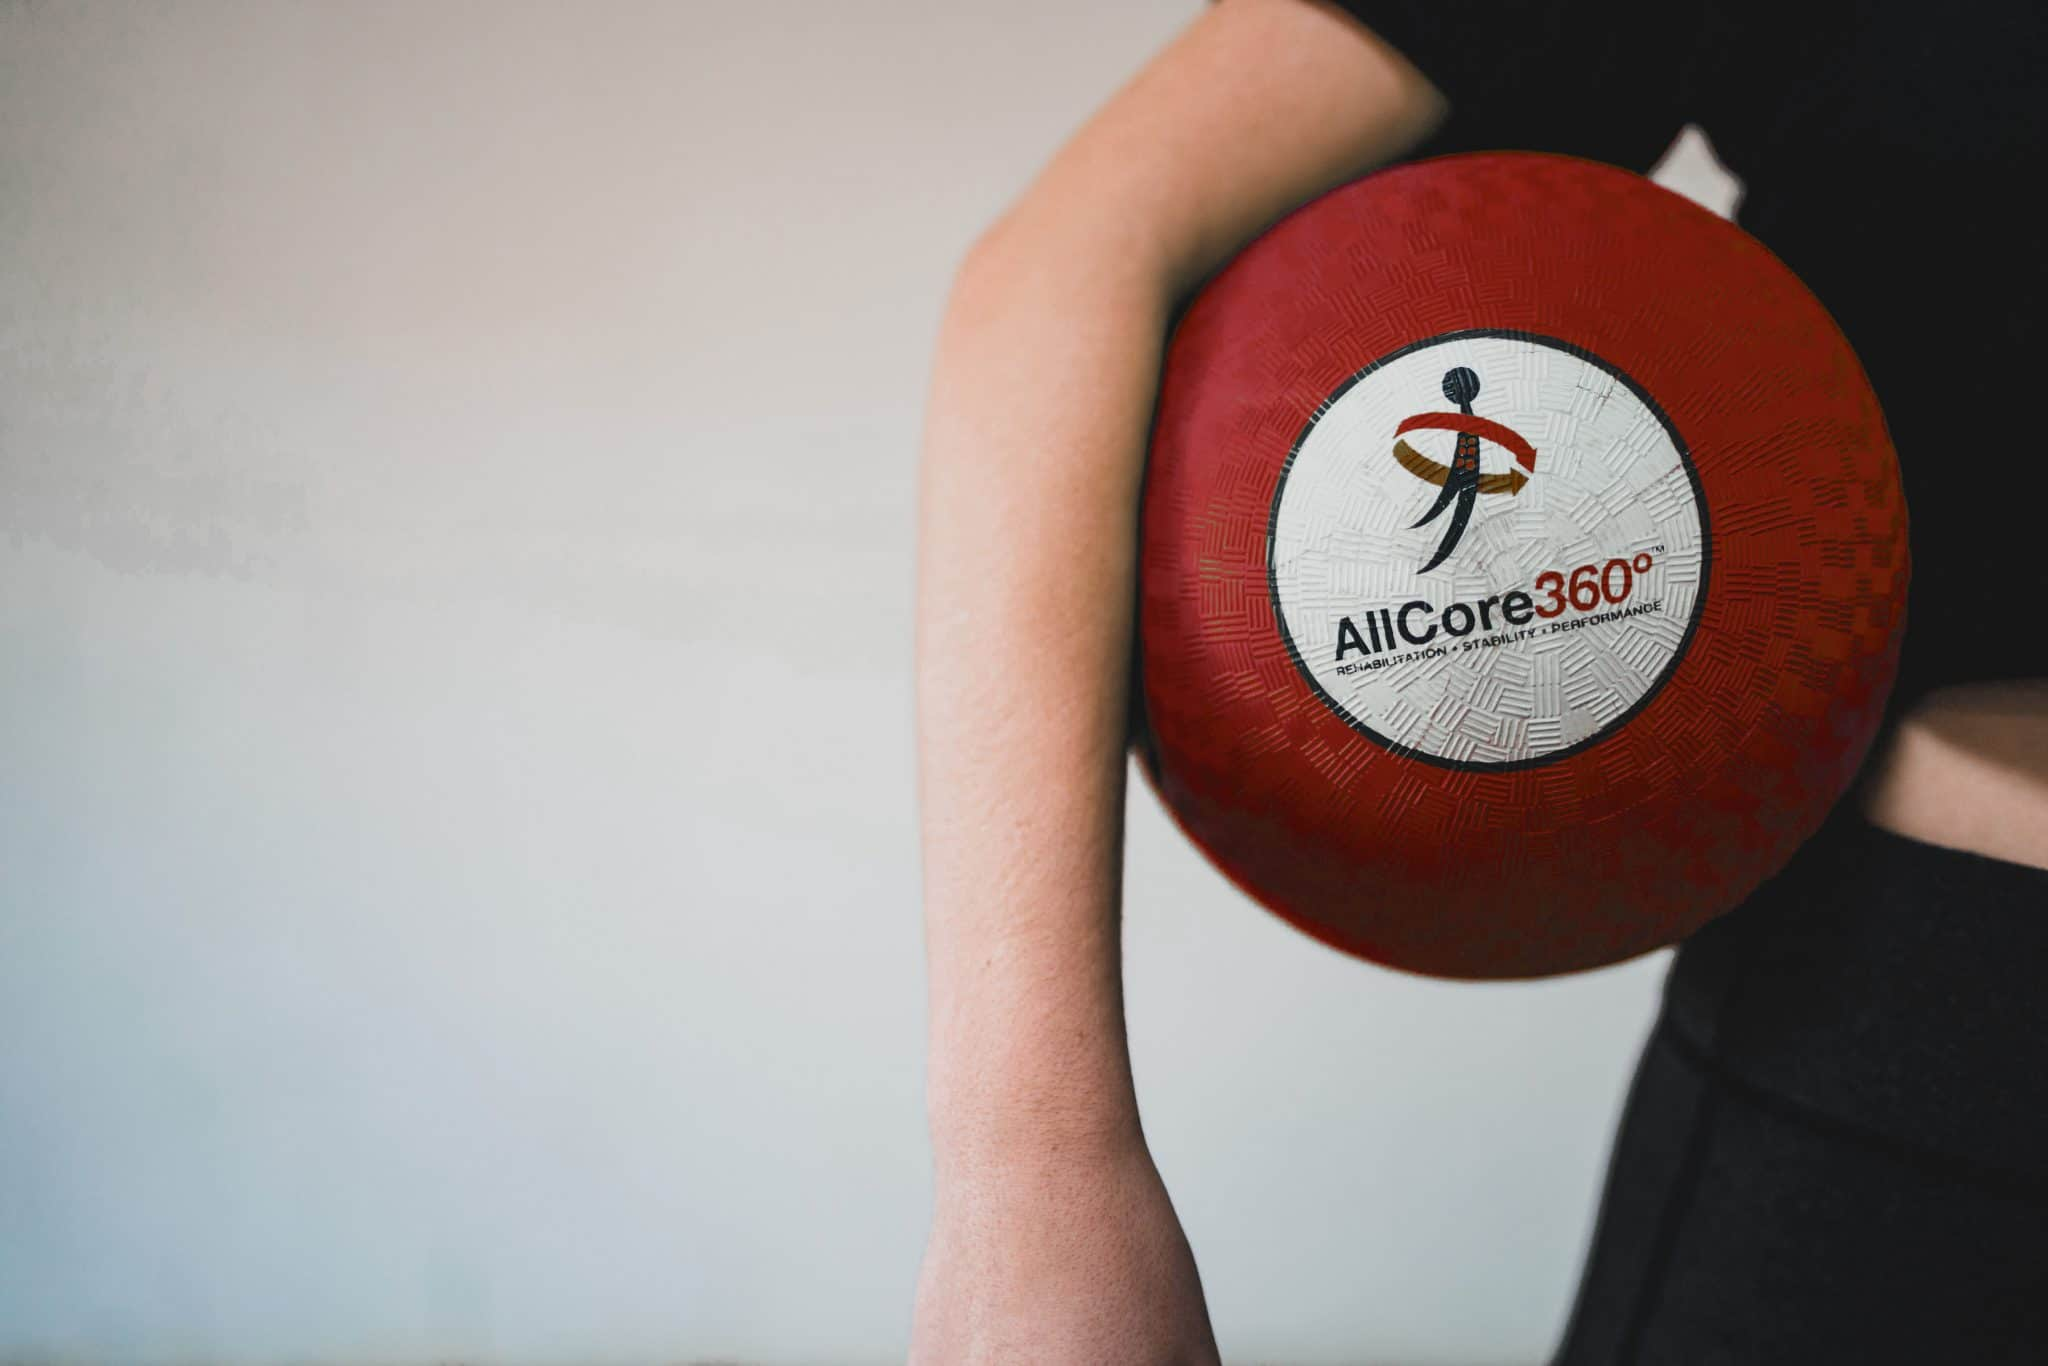 Gray Chiropractic & Sports Associates: Innovation in Chiropractic Healing with the AllCore360°